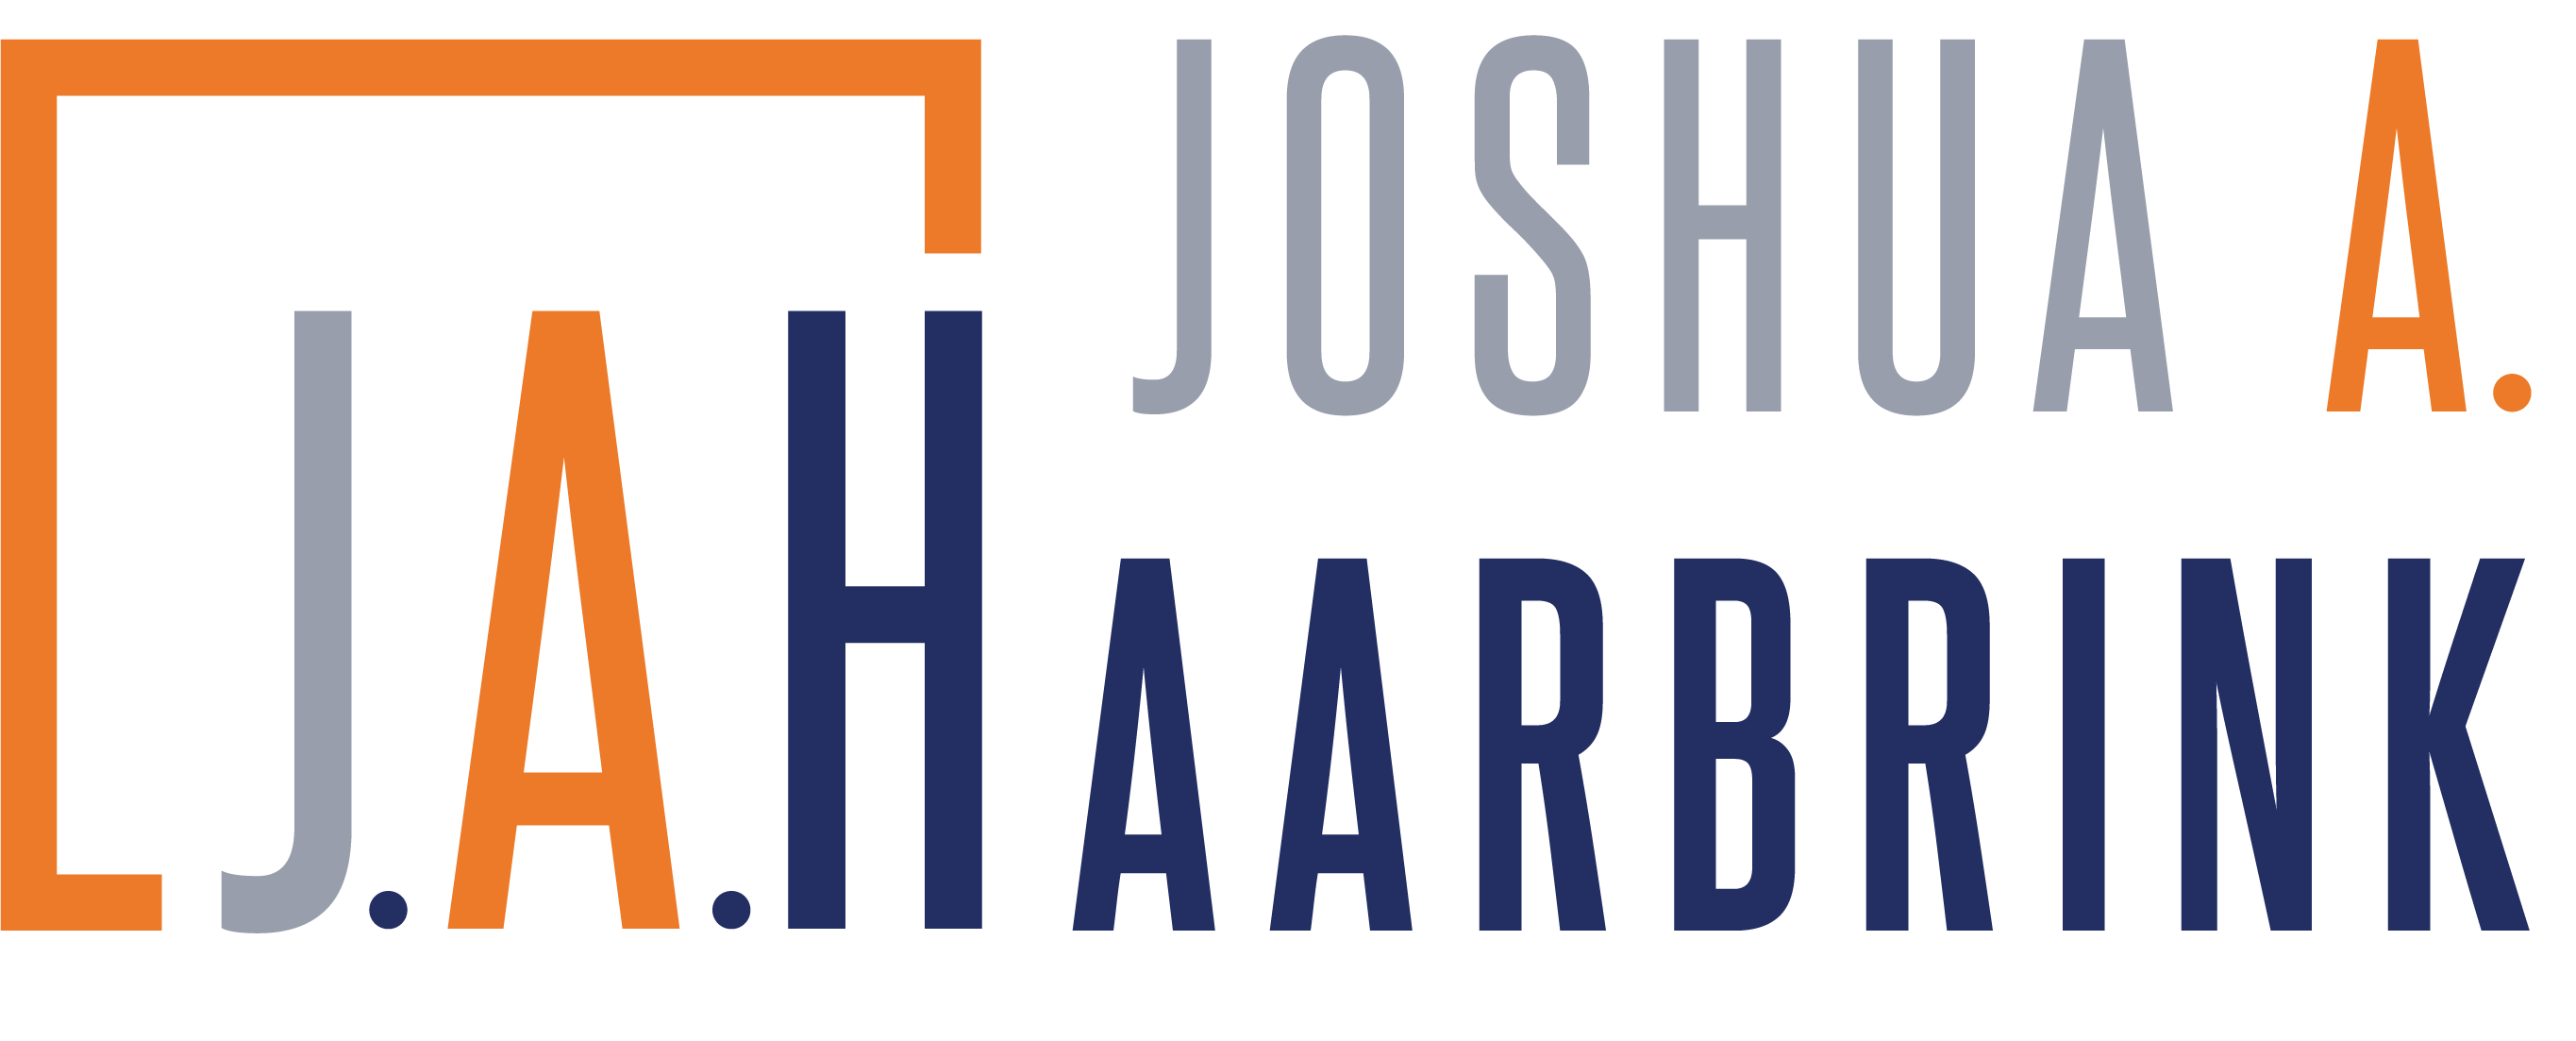 Joshua Haarbrink - Consulting, Management and Philanthropy